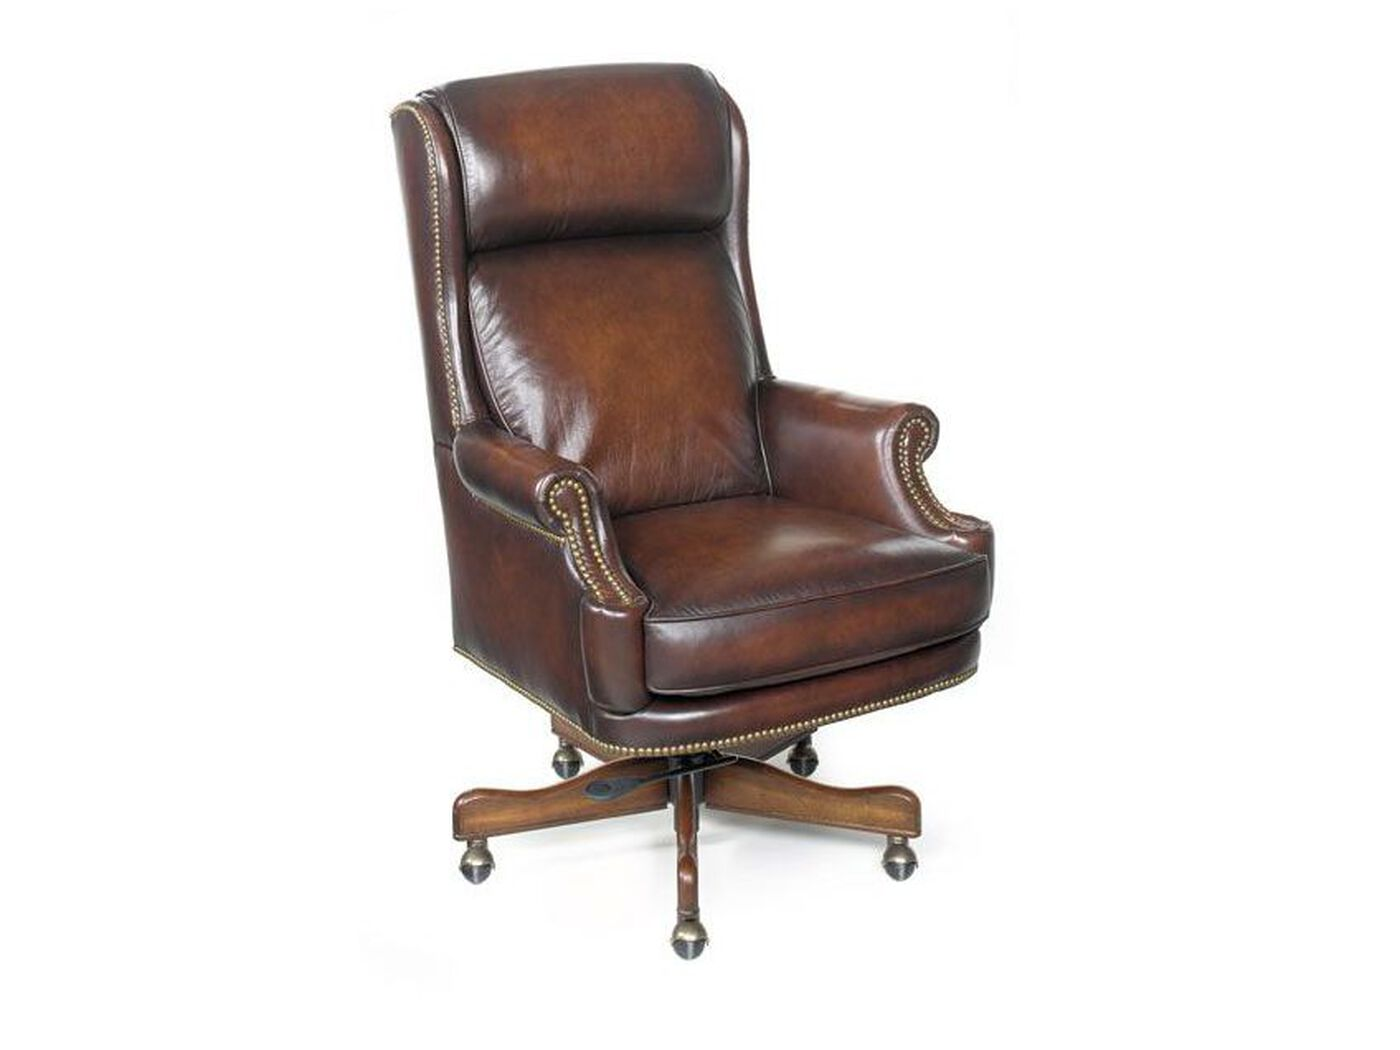 Leather Nailhead Accented Executive Swivel Tilt Chair In